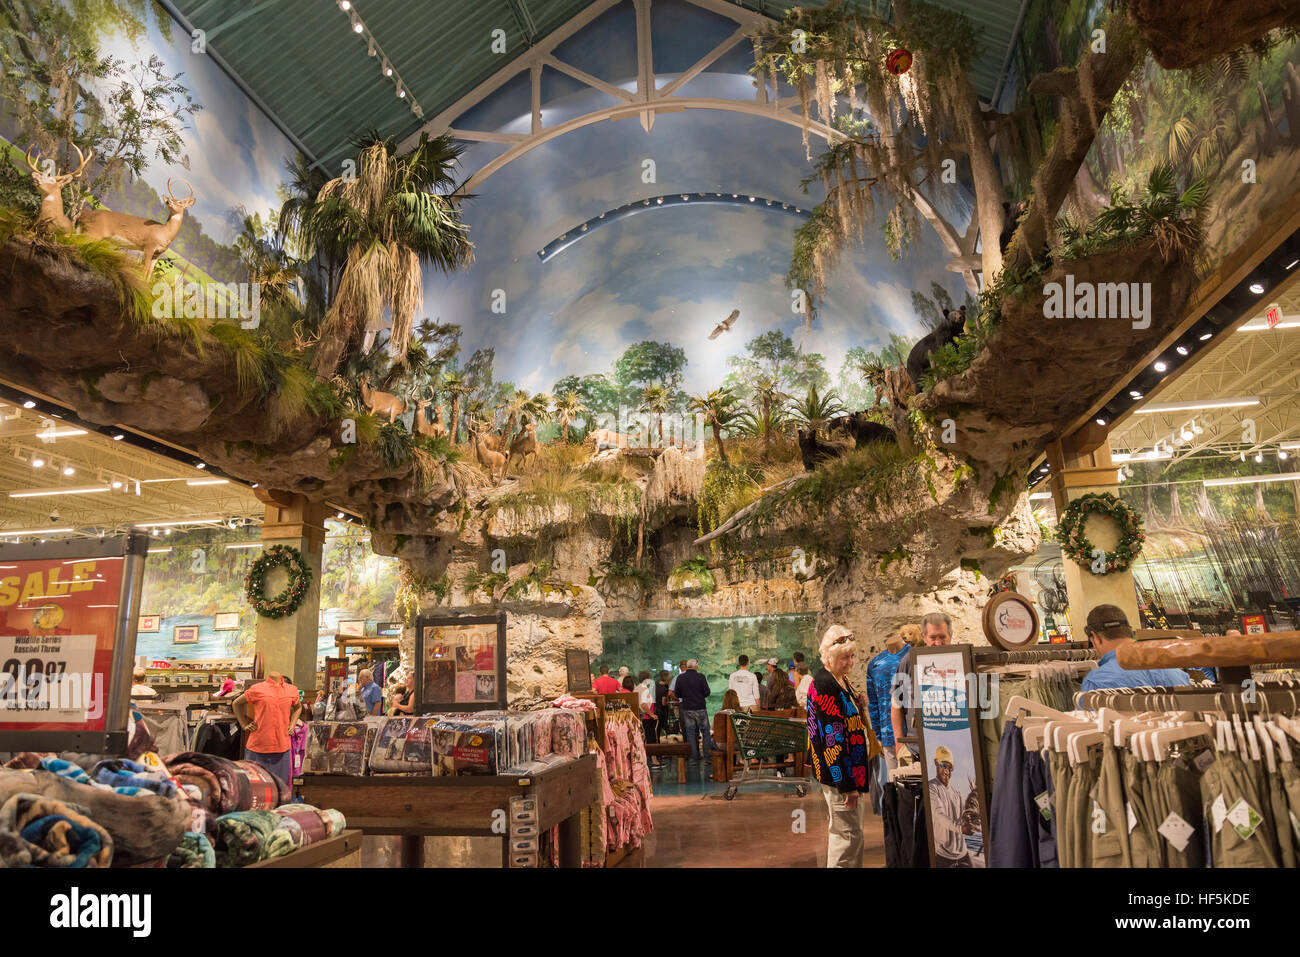 Grand opening of bass pro shops sportsman center for Fishing in gainesville fl